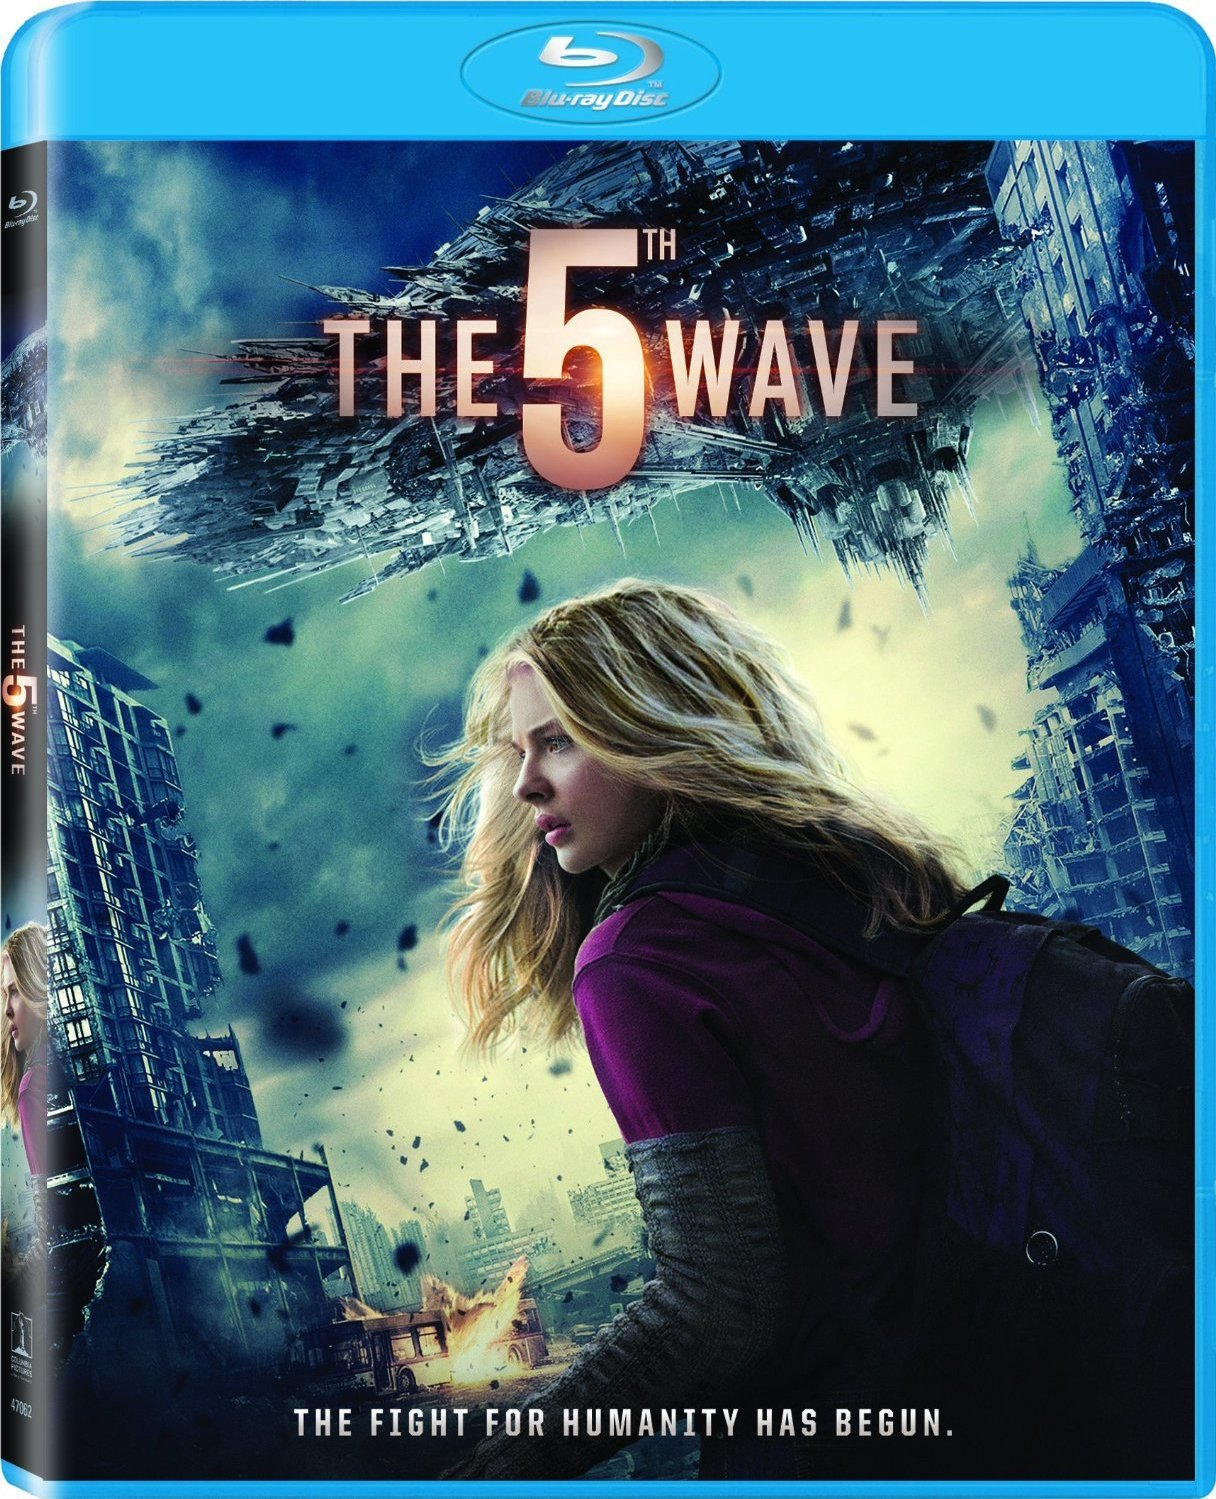 download the 5th wave movie 480p